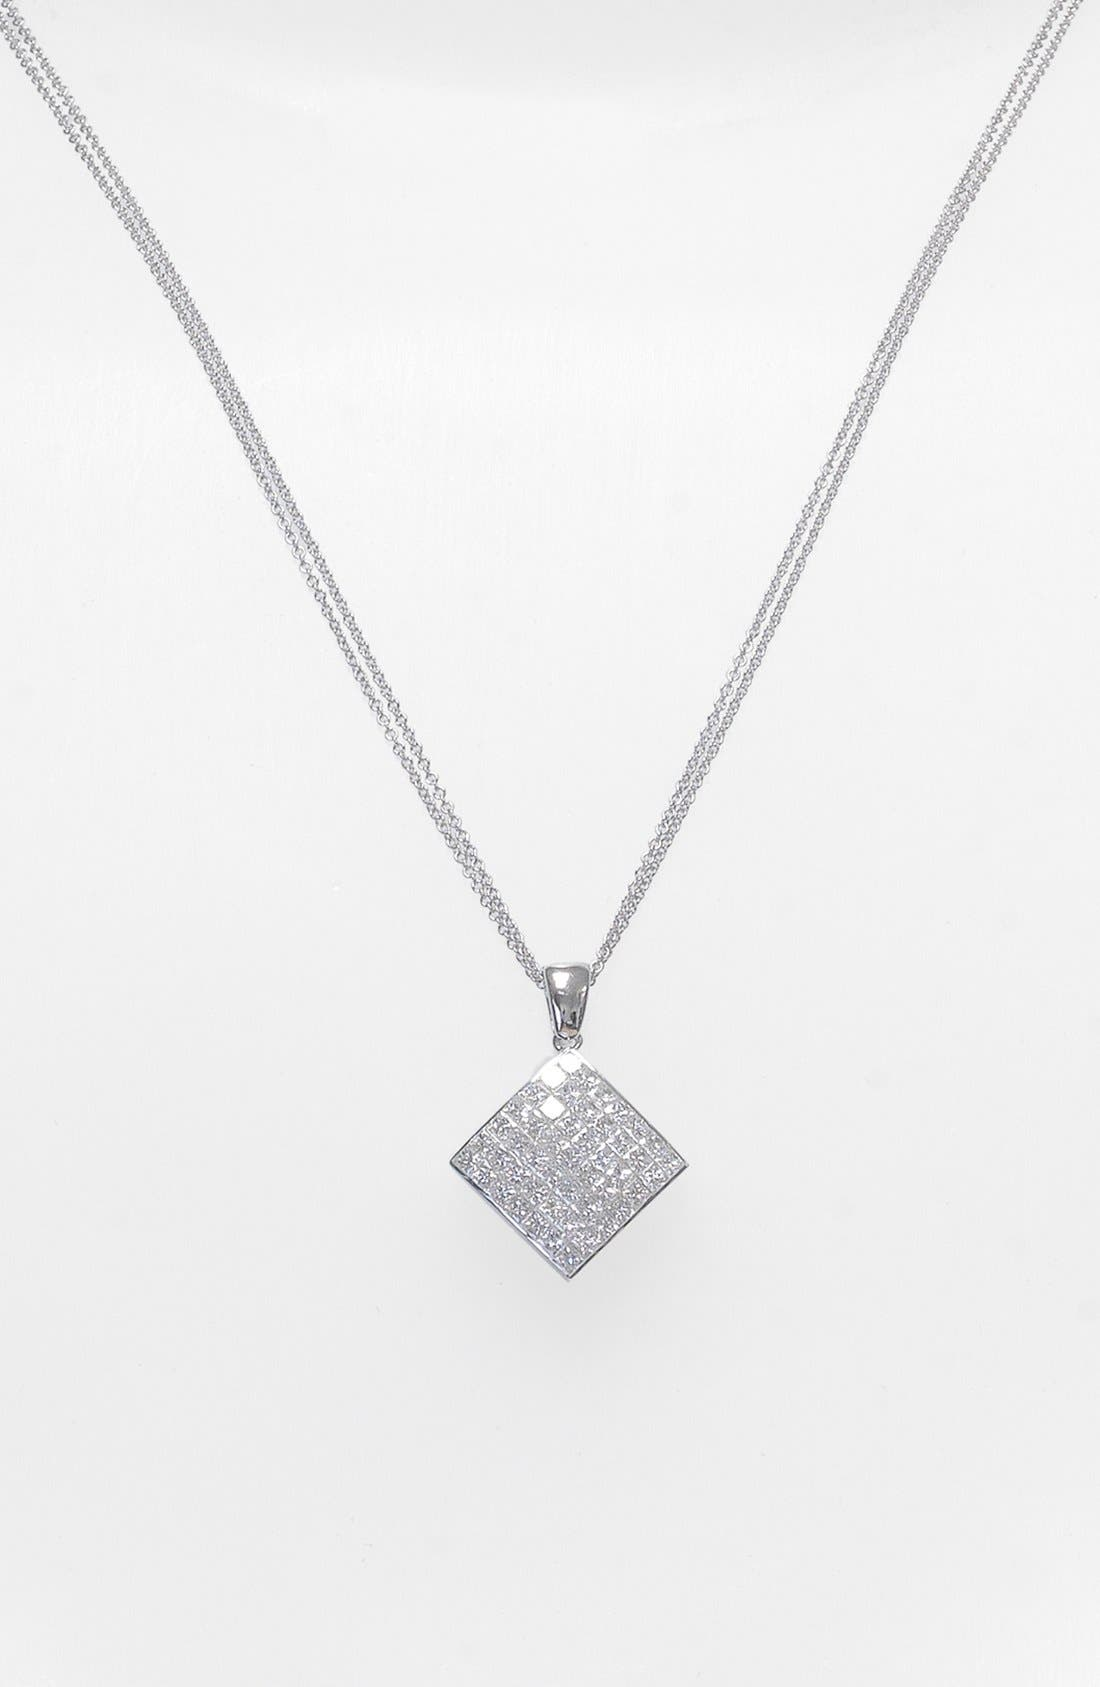 Alternate Image 1 Selected - Bony Levy Diamond Pendant Necklace (Nordstrom Exclusive) (Limited Edition)